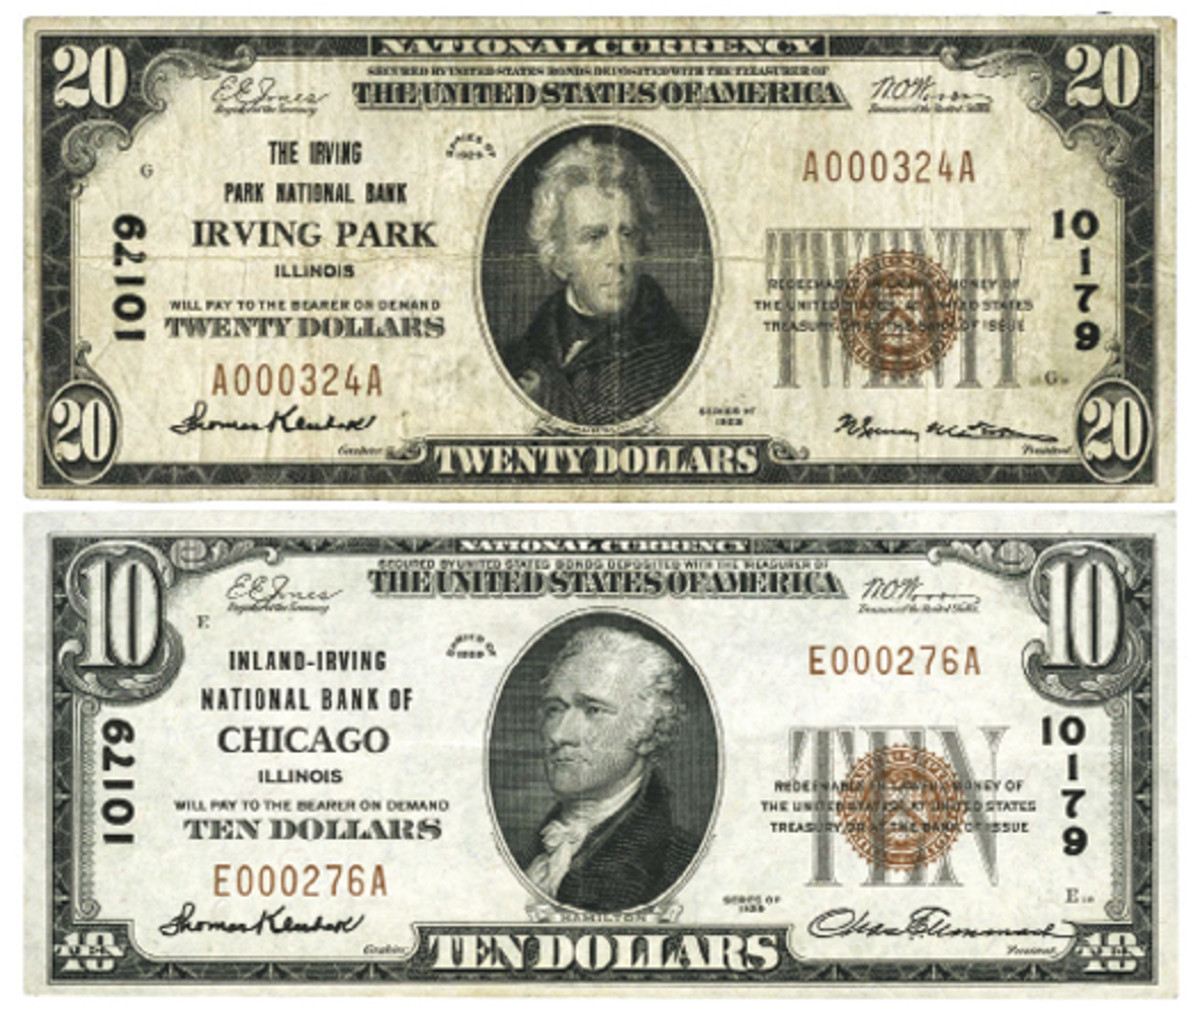 Figure 3. The name change in the identity of this note was made in February of 1931. It was changed from the neighborhood of Irving Park to the city proper of Chicago.